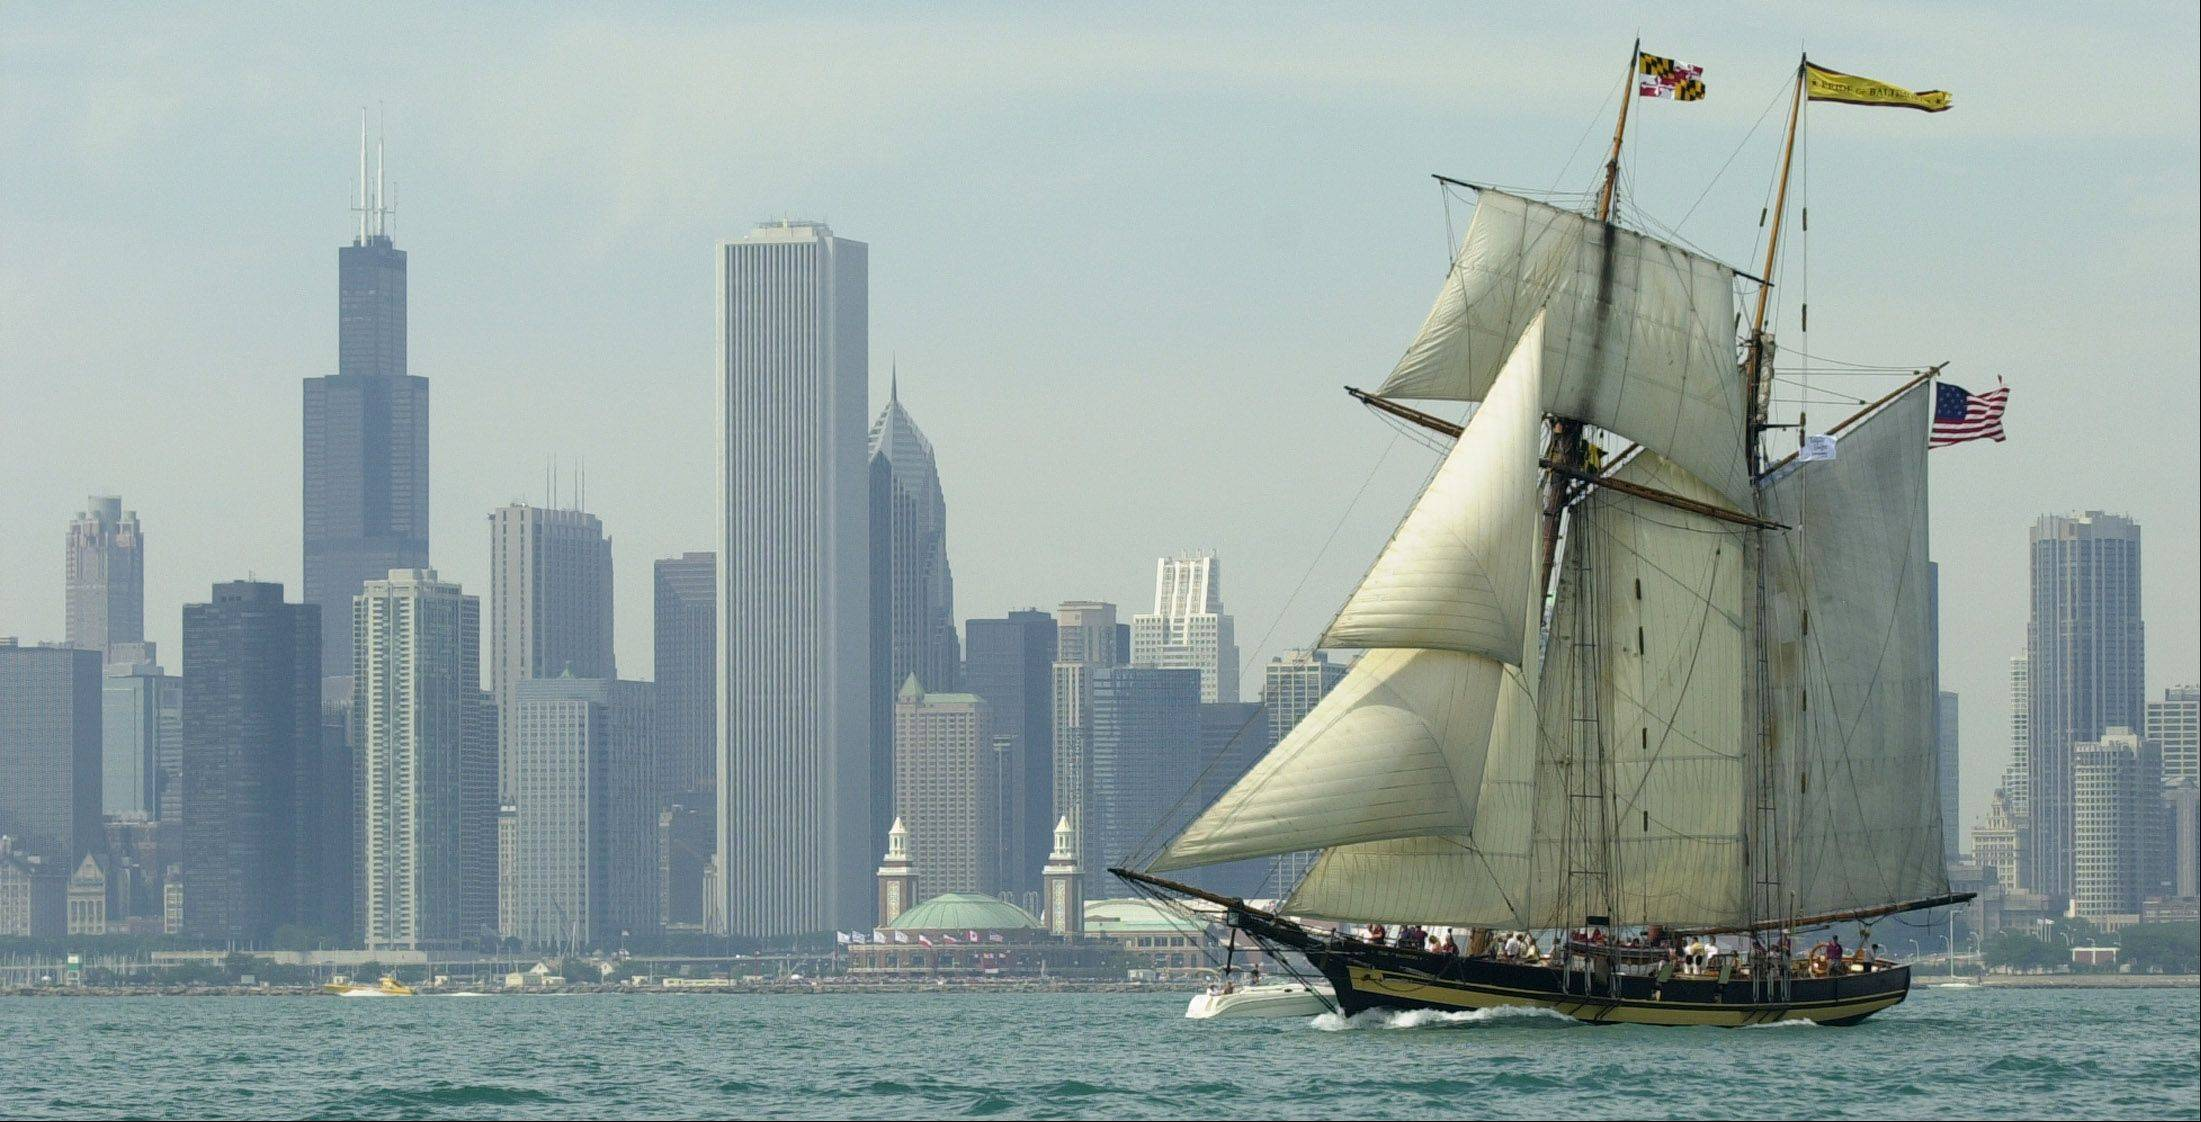 "The sailing ship ""Pride of Baltimore II"" will visit Chicago during ""A Taste of Tall Ships Chicago 2011"" from Aug. 11-14 at Navy Pier."